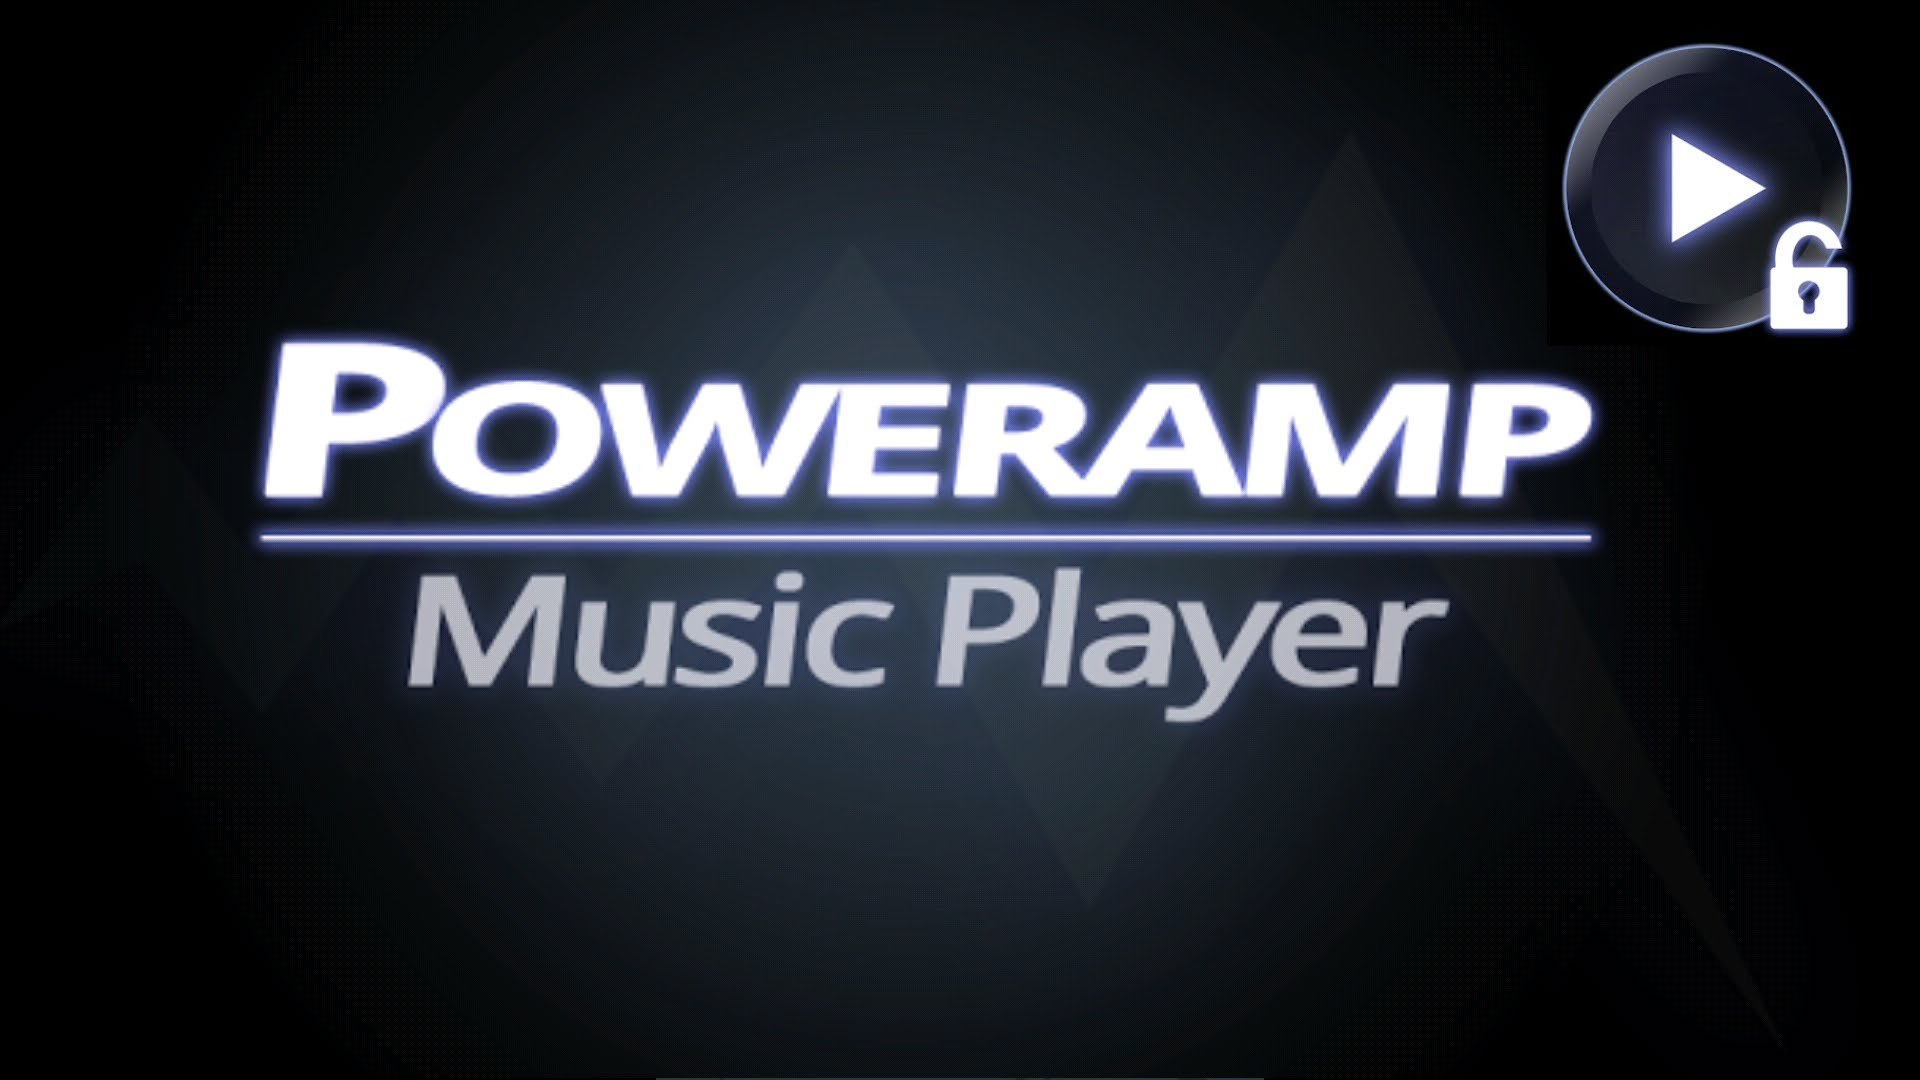 Poweramp Full Version Unlocker에 대한 이미지 검색결과